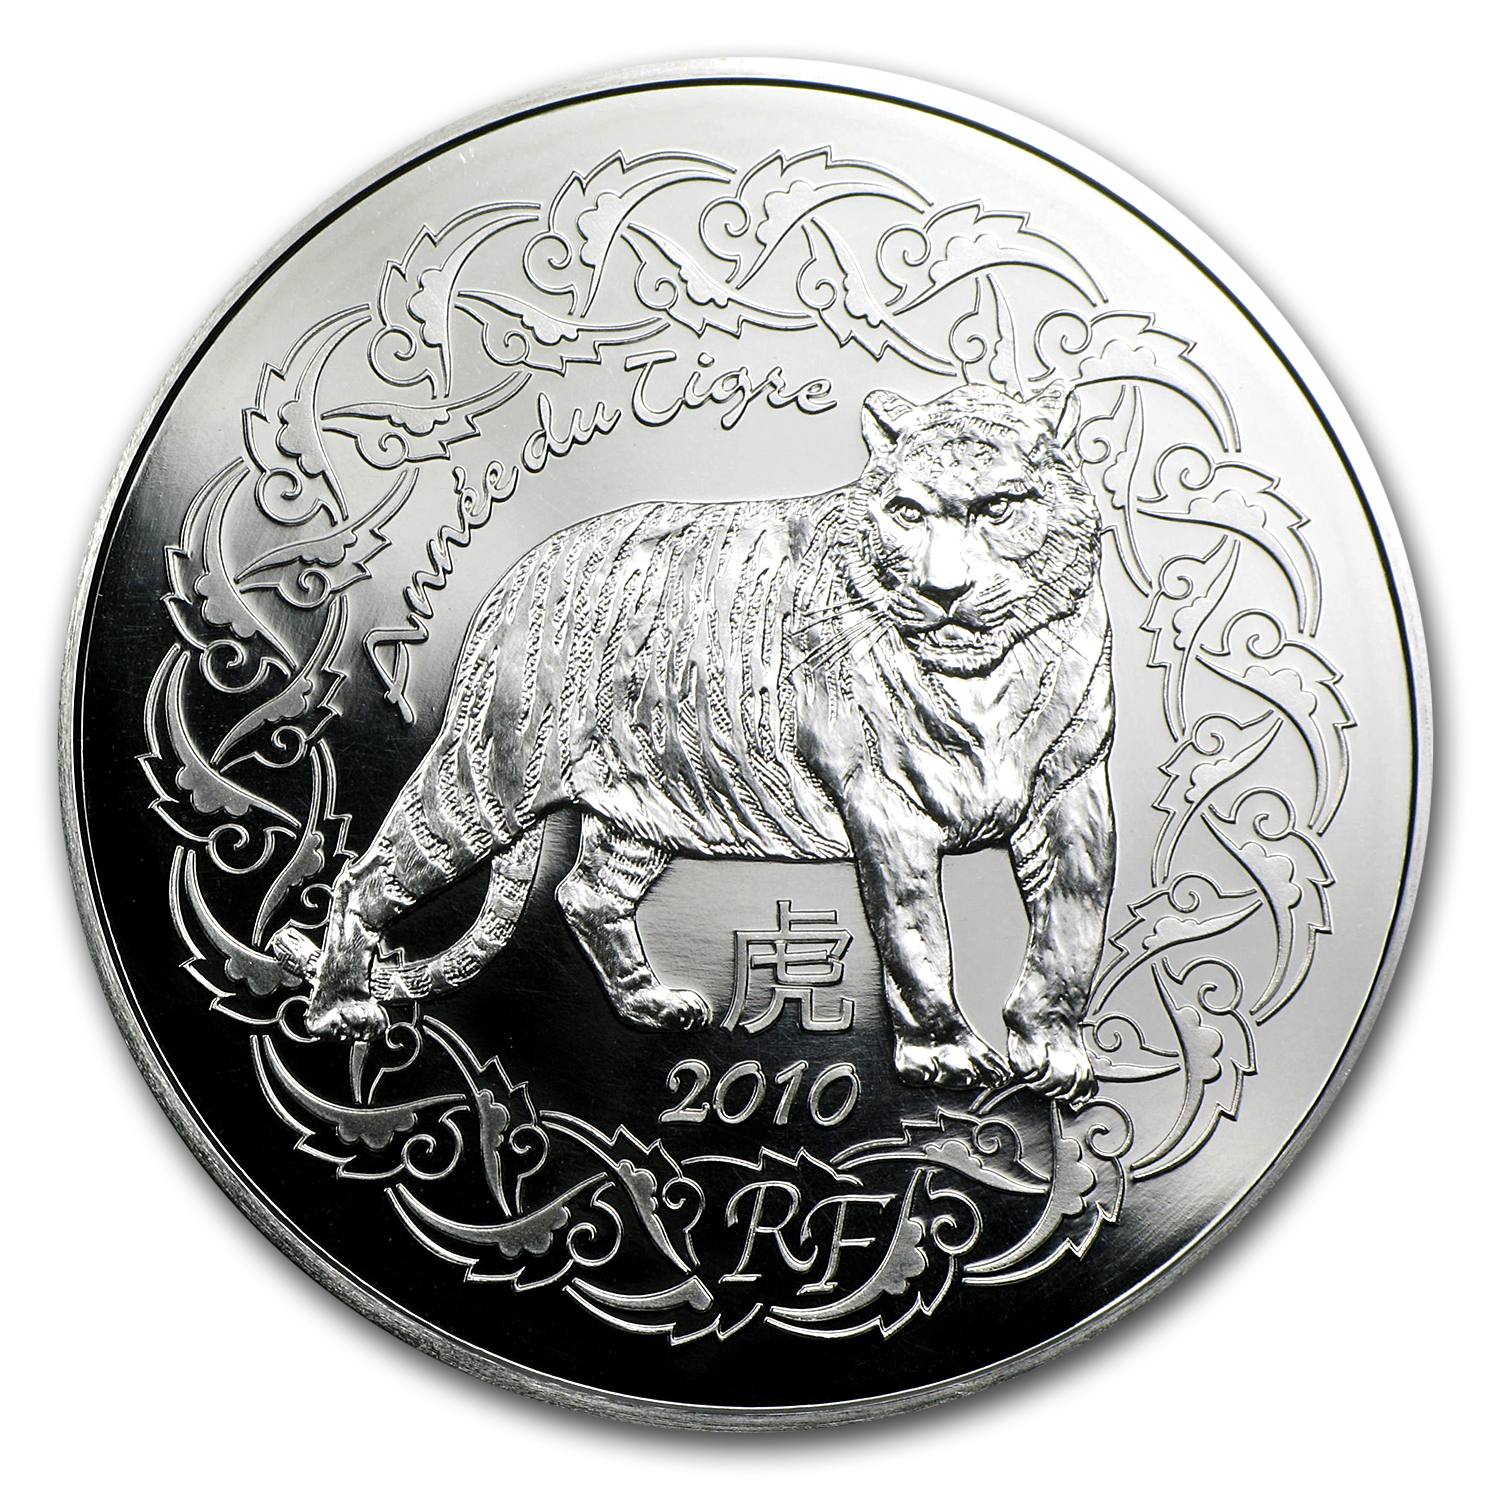 2010 €5 Silver France Year of the Tiger - Lunar Series